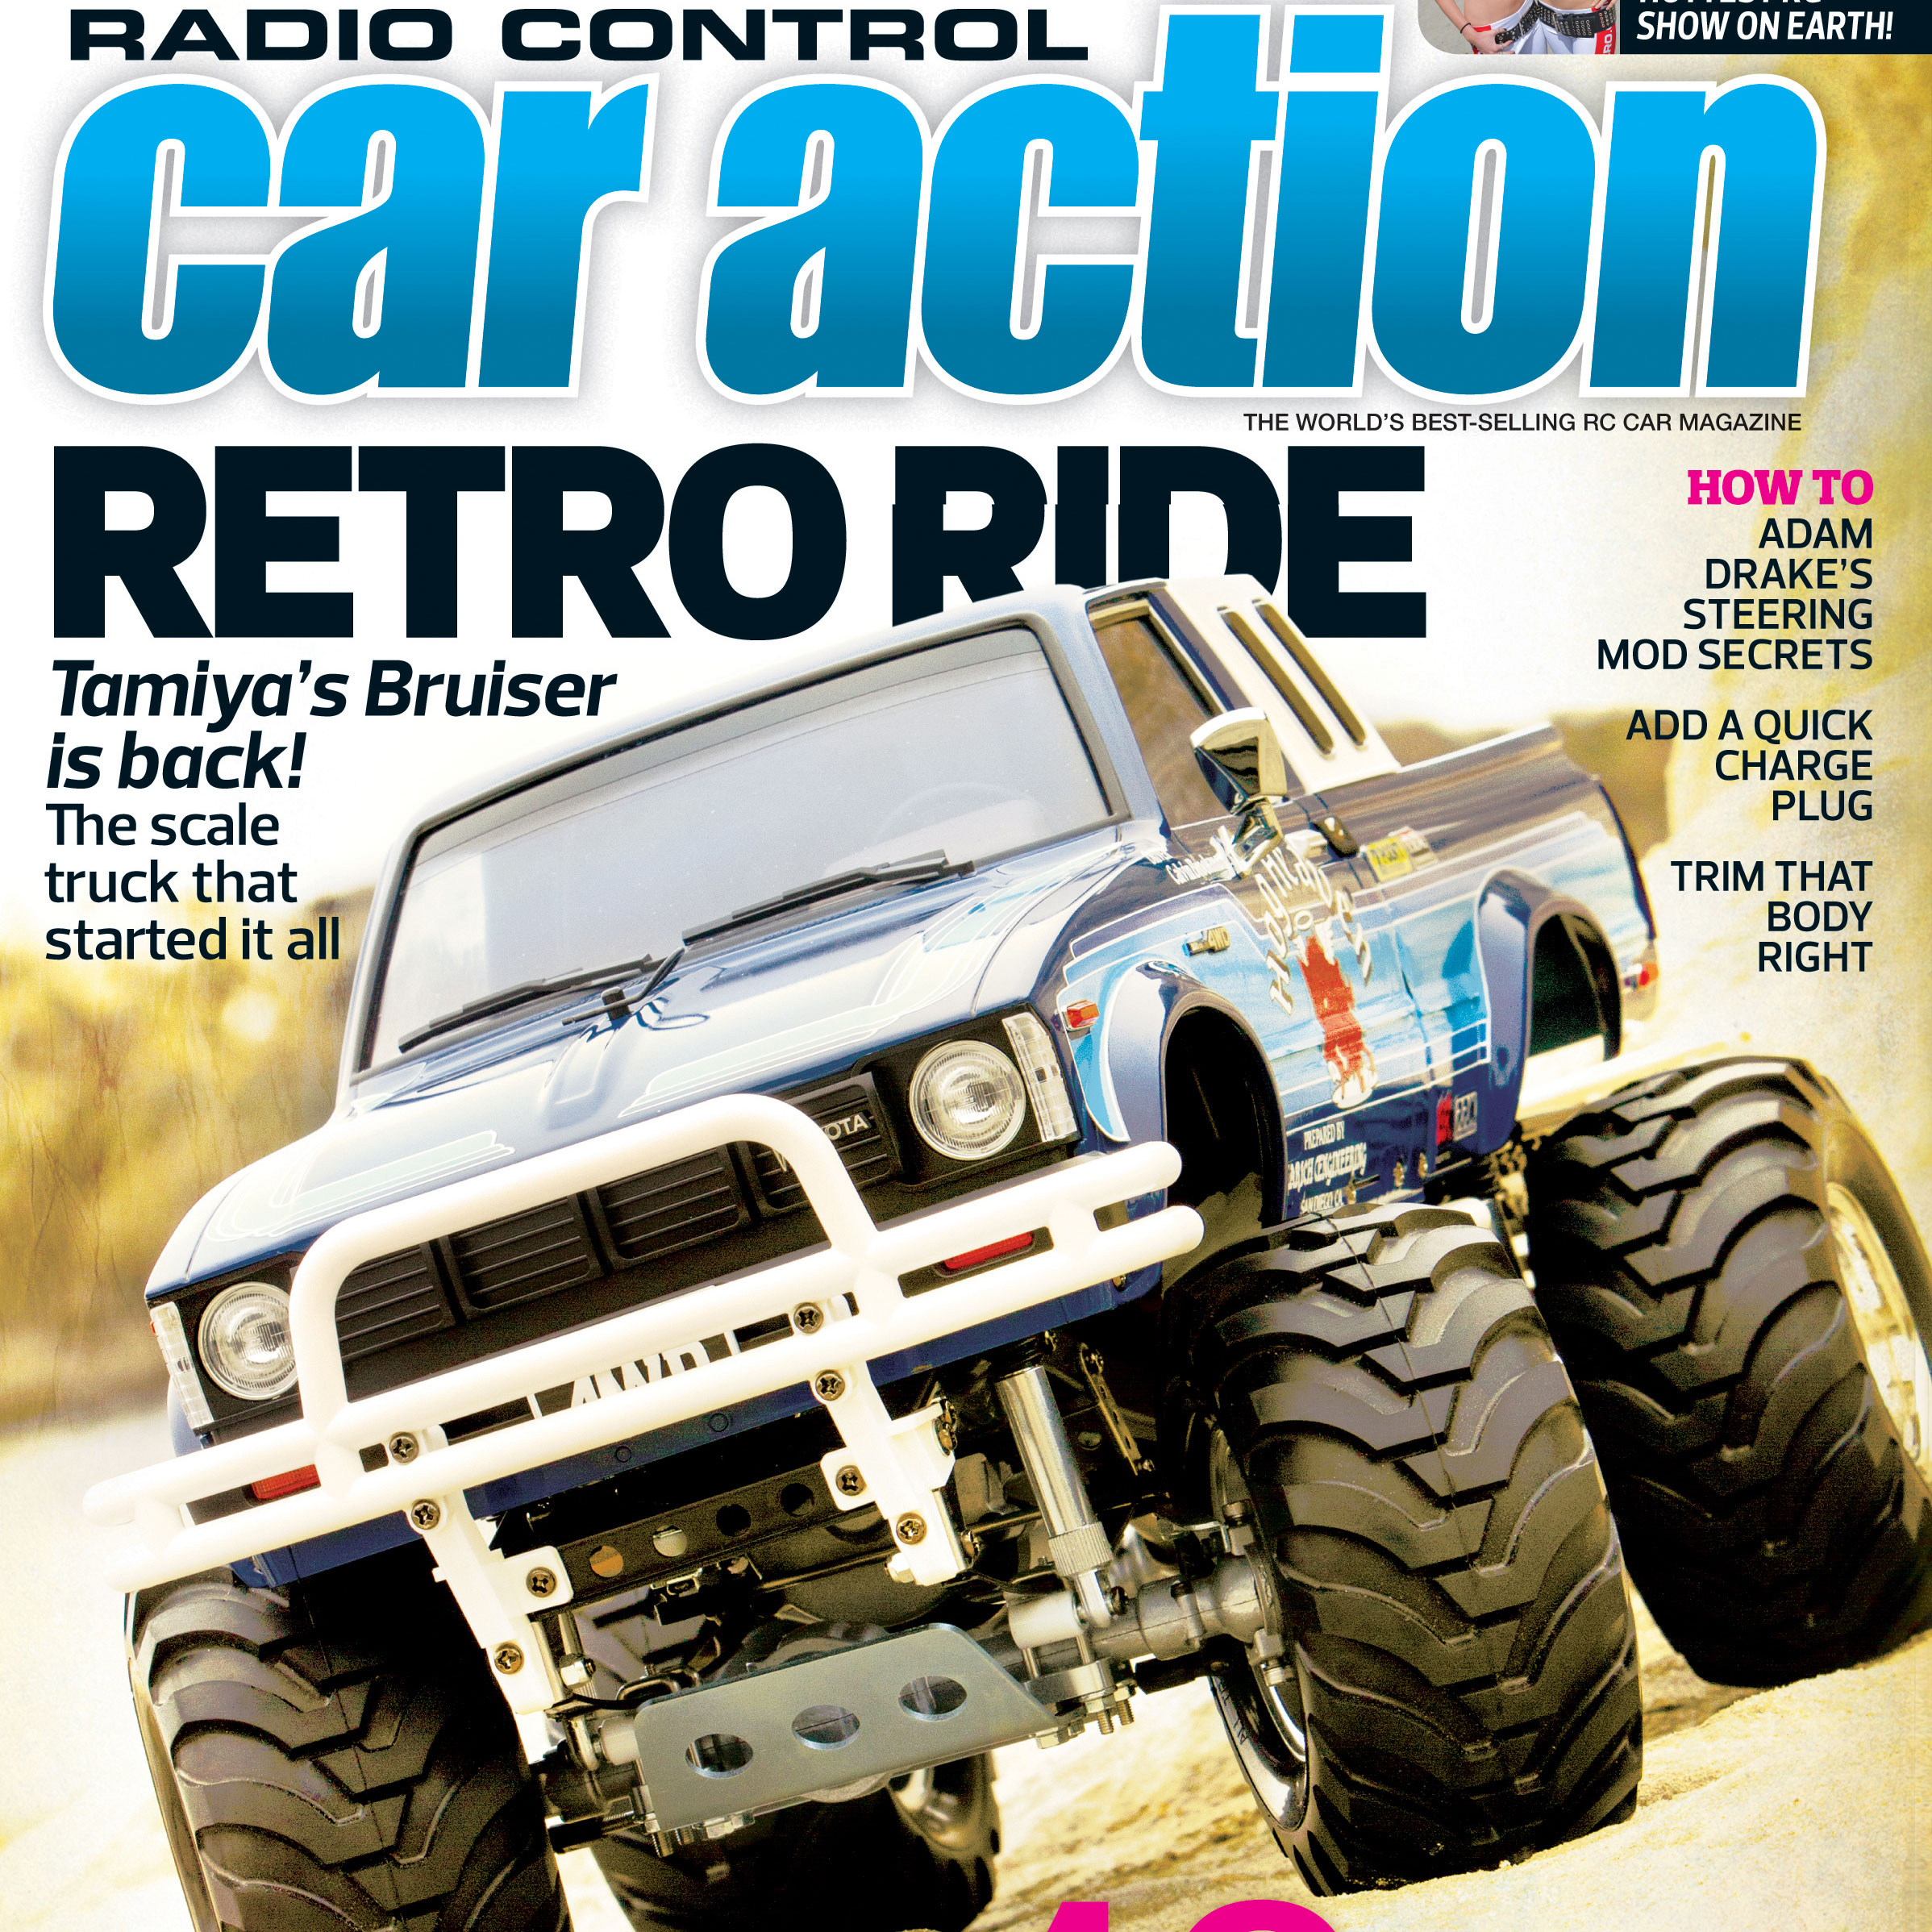 Rc Car Action >> August 2012 Radio Control Car Action Magazine On Sale Now Check Out